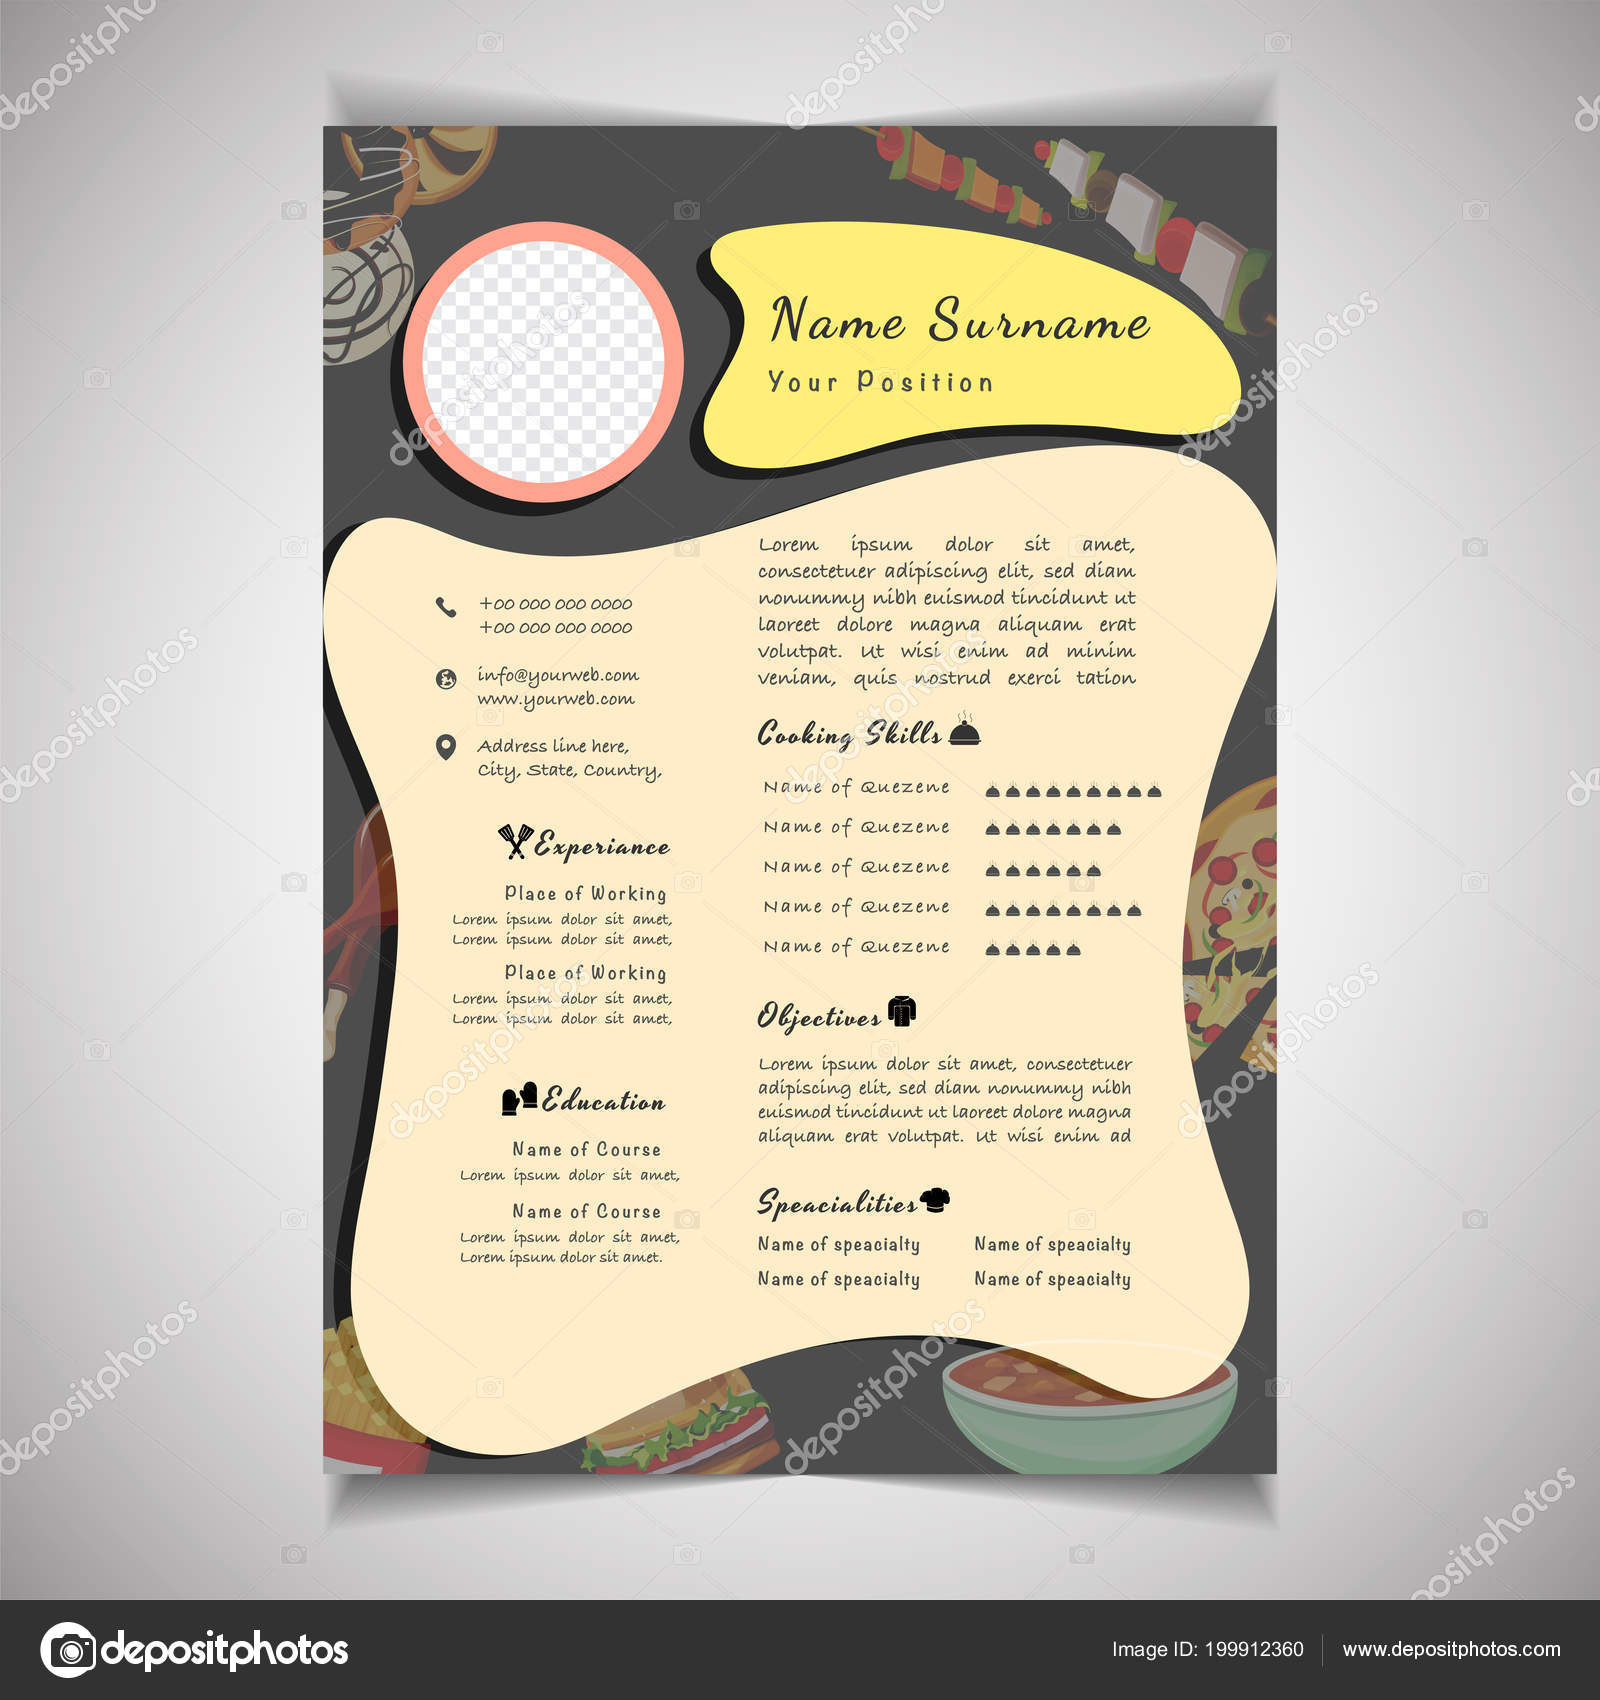 creative field resume template can be use as letterhead or cover letter professional cv design with placeholder vector by alliesinteract